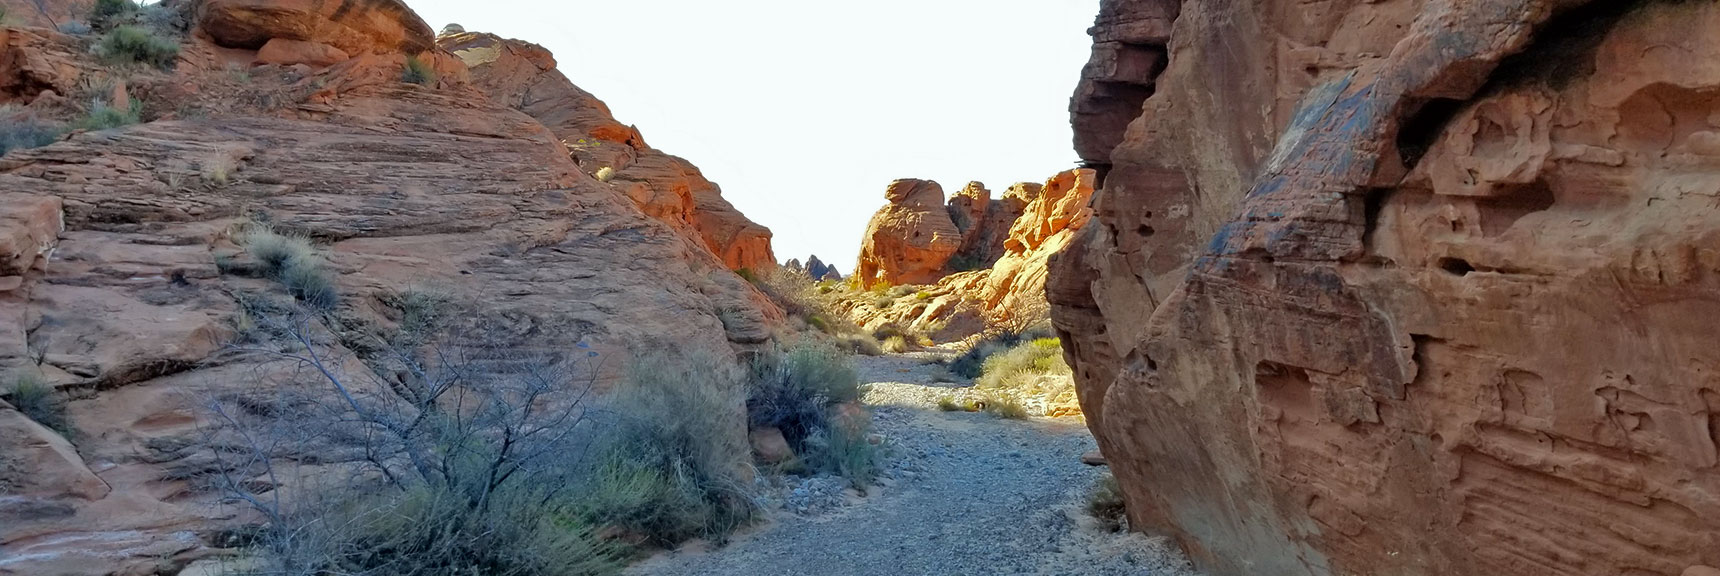 Descending Through the Northern Canyon Wash Toward White Domes on Prospect Trail in Valley of Fire State Park, Nevada